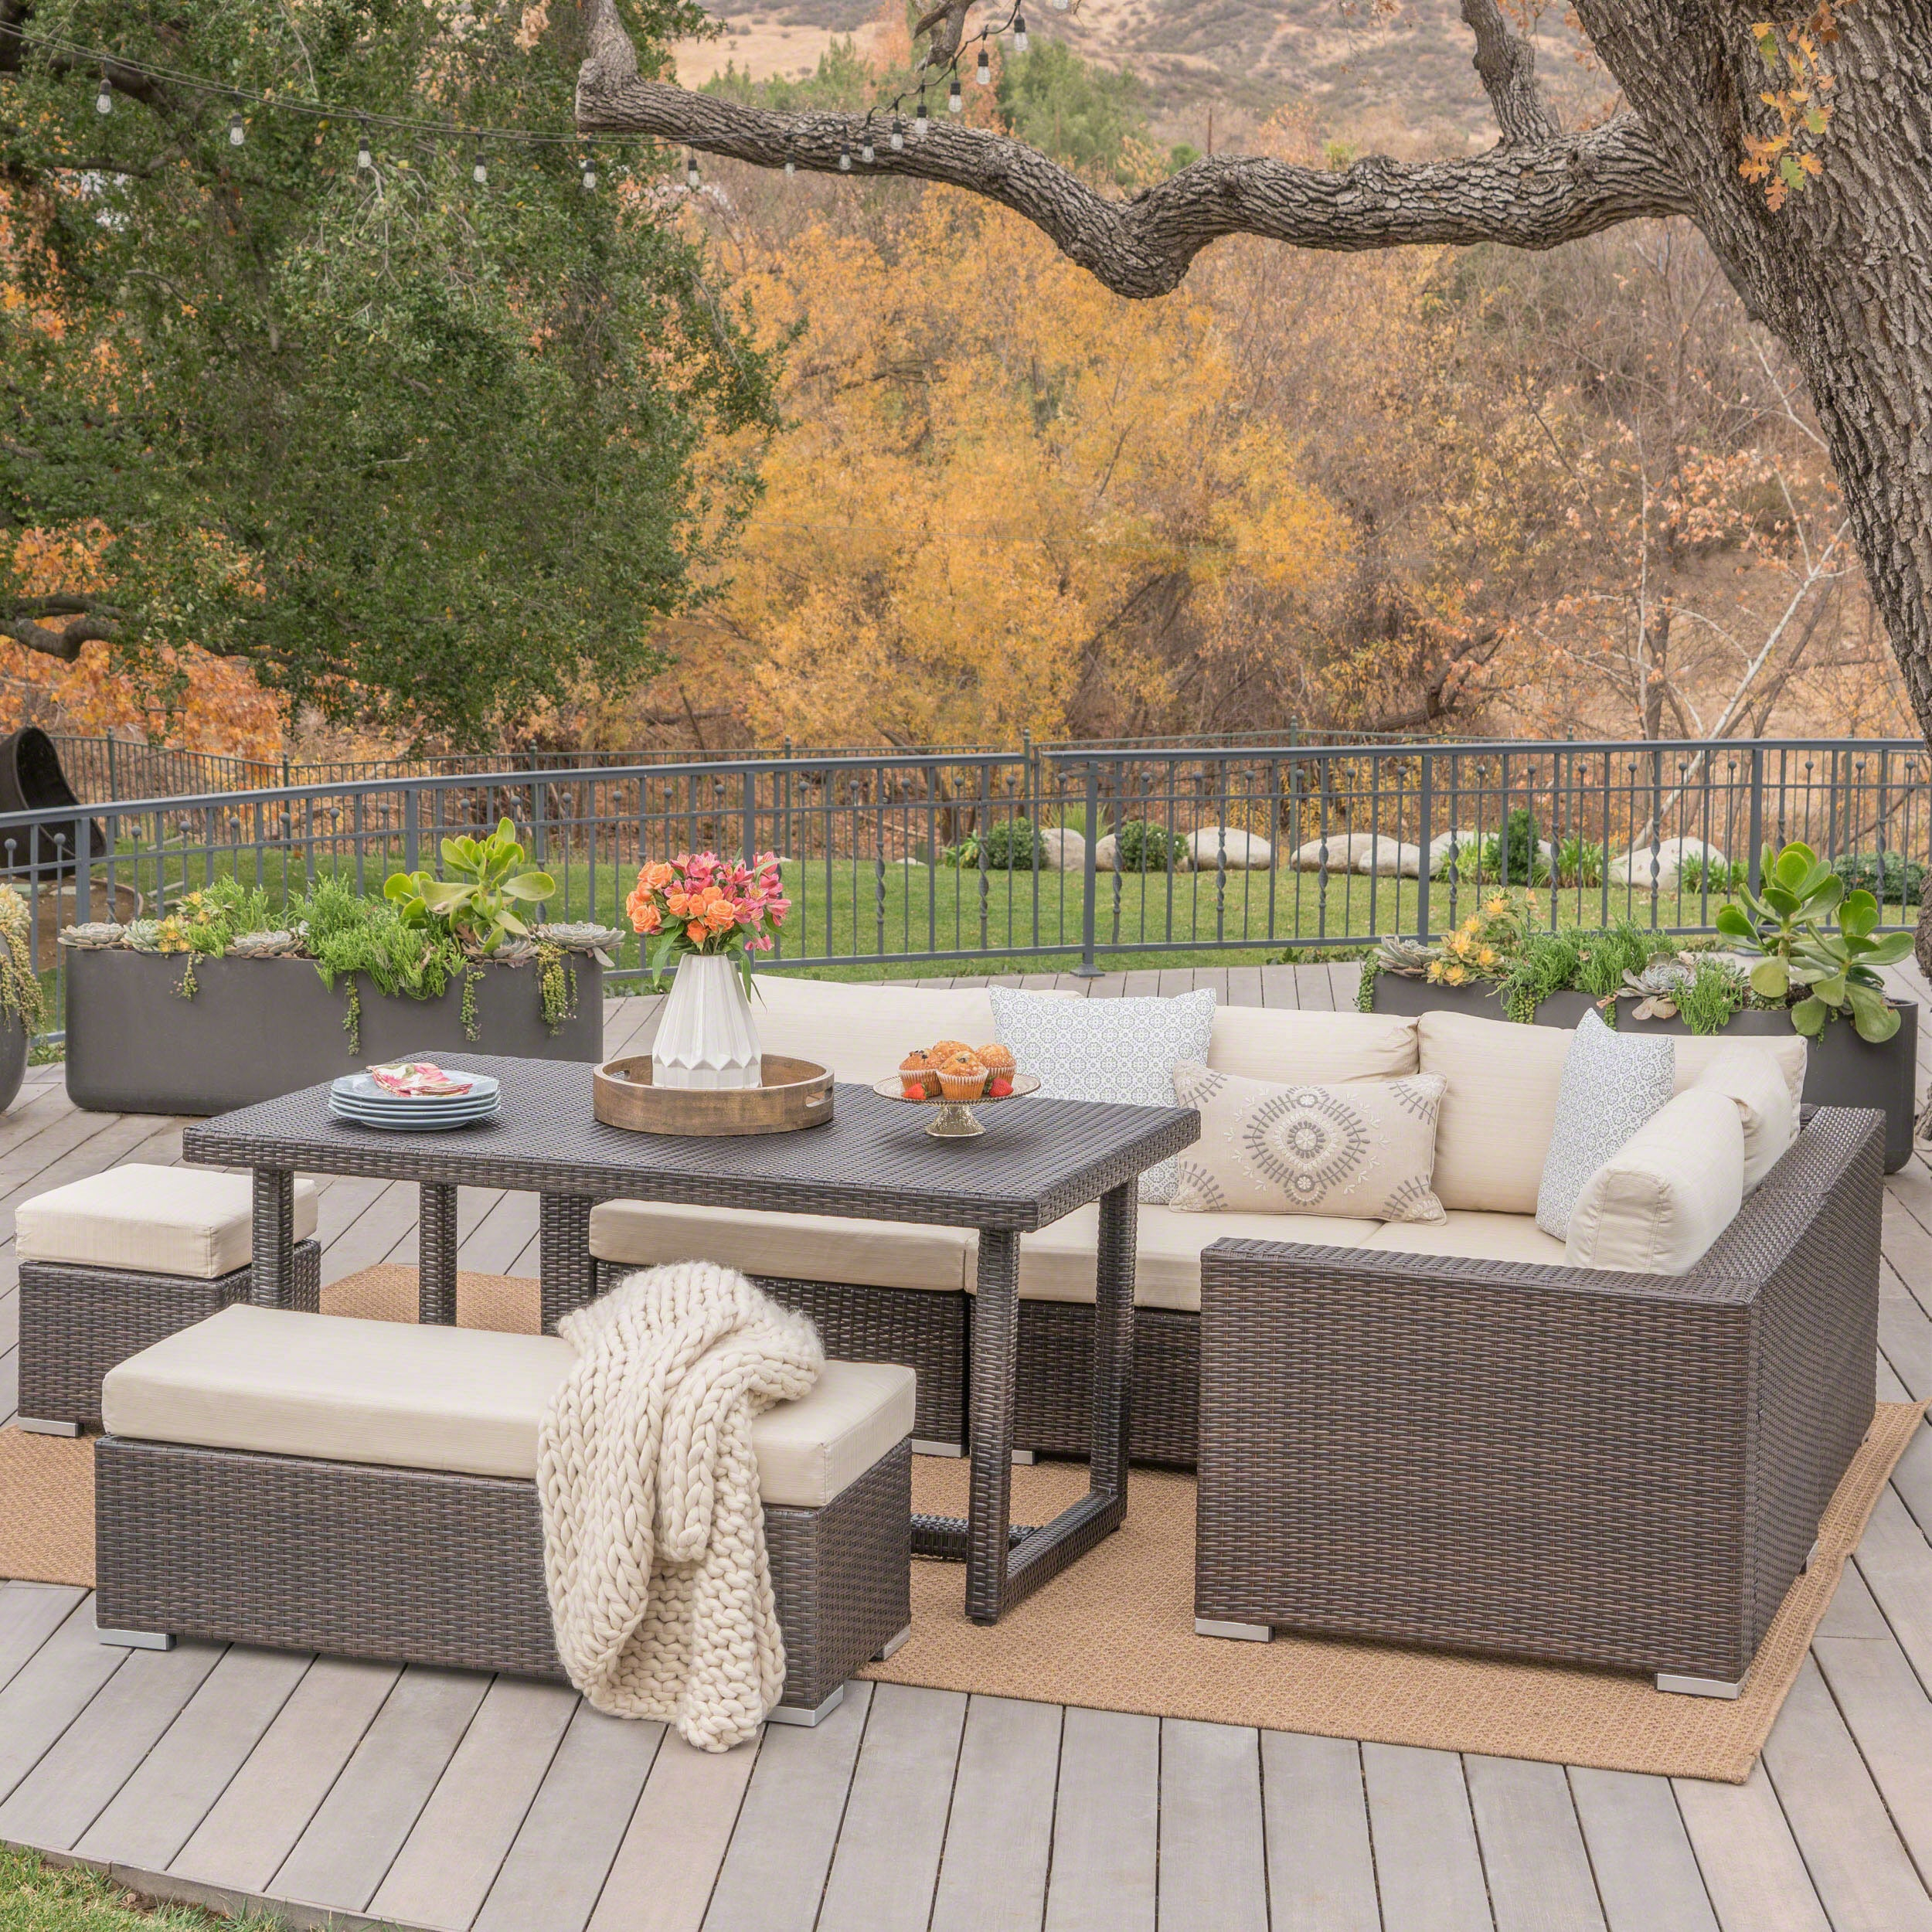 Buy Outdoor Dining Sets Online At Overstock.com | Our Best Patio Furniture  Deals